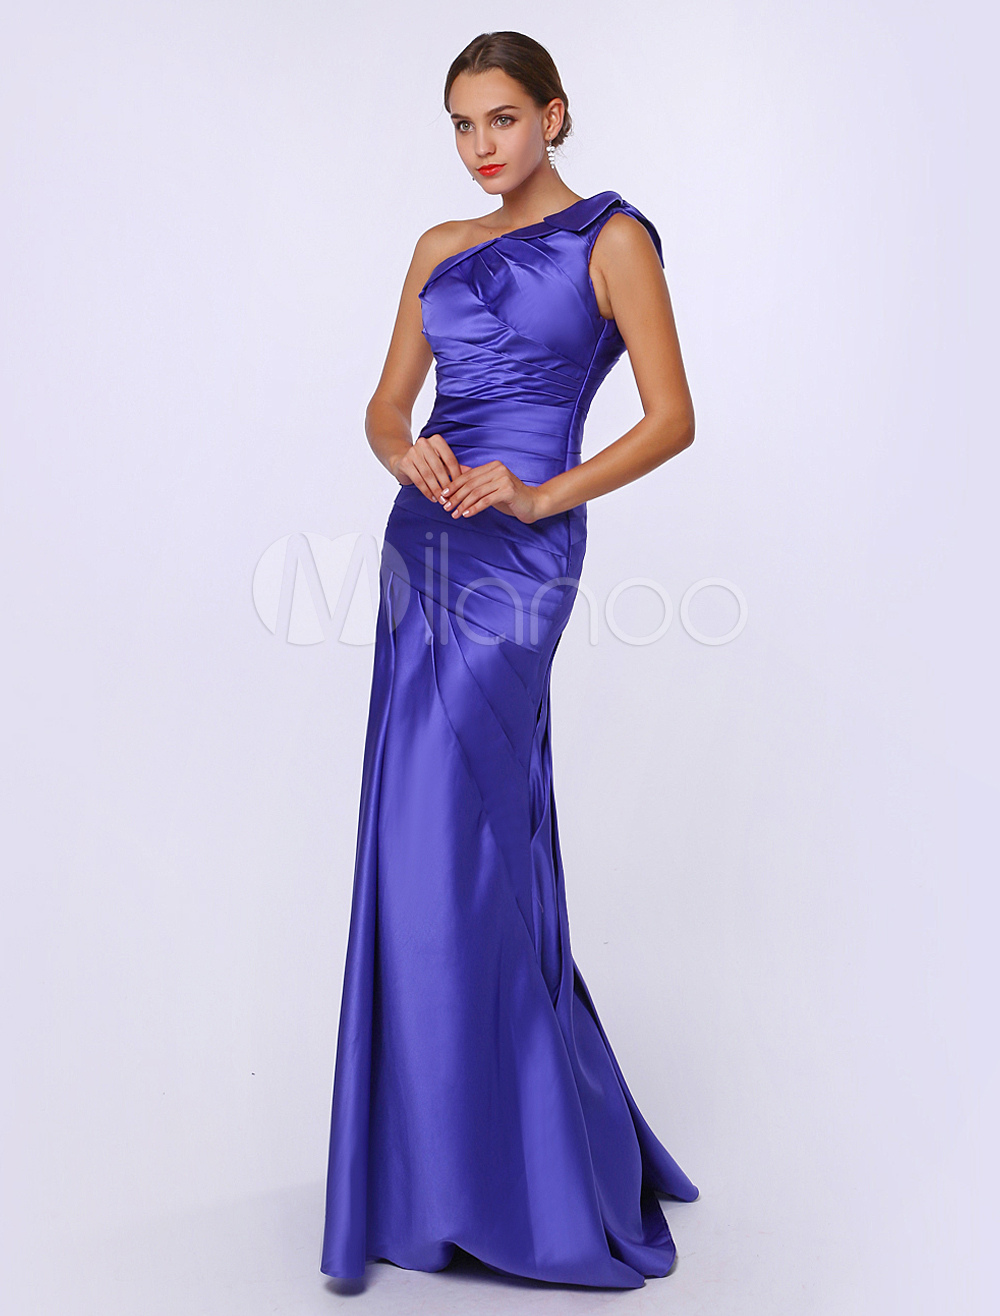 Royal Purple Mother Of Bride Dress Satin Mermaid One Shoulder Sleeveless Floor Length Wedding Party Dress